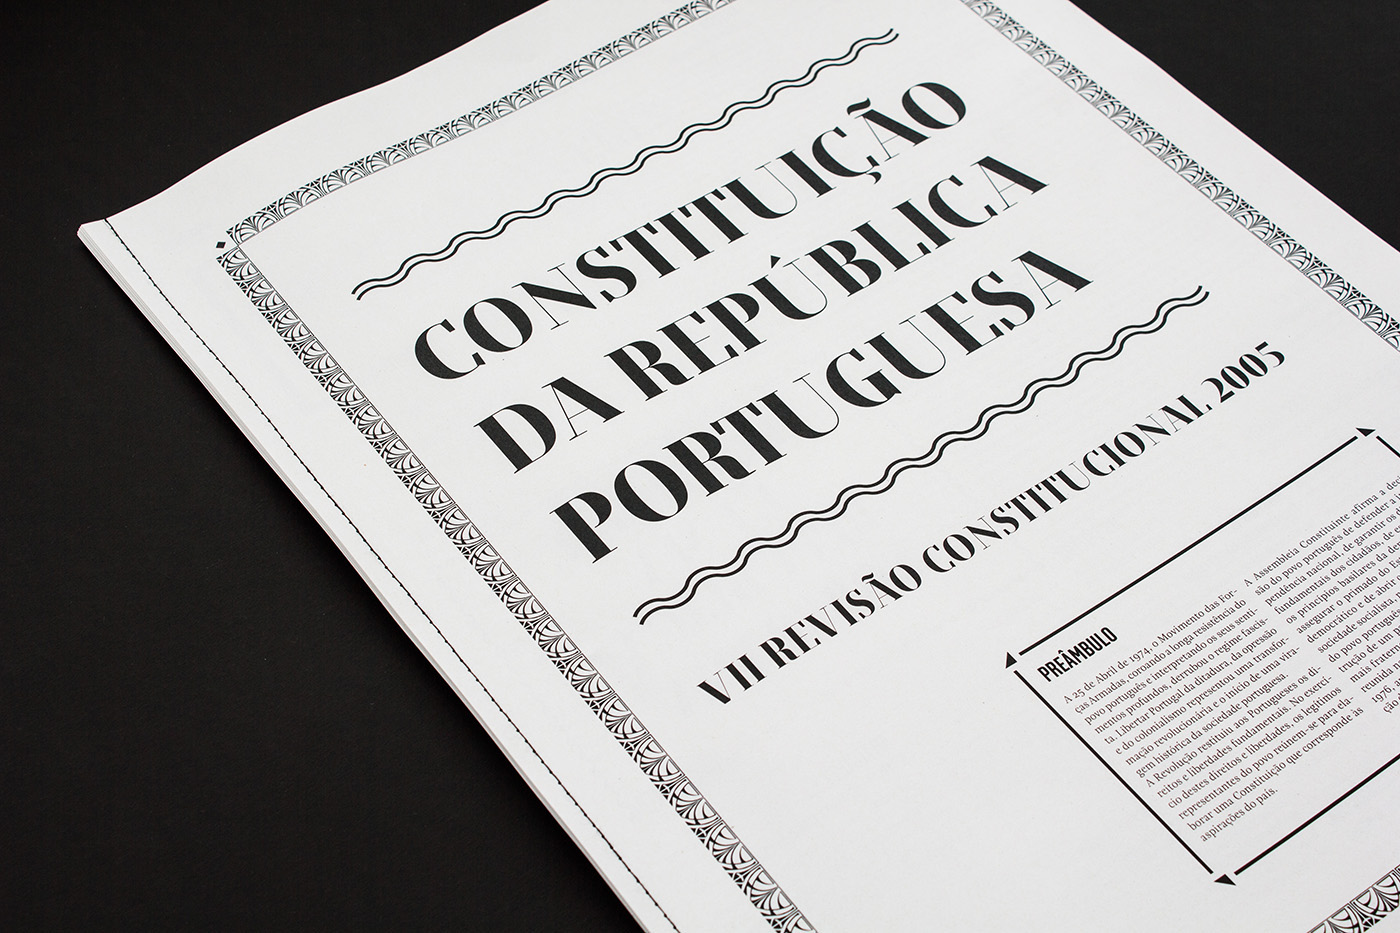 newspaper journal jornal Constitution Portuguese Constitution CRP editorial another another collective